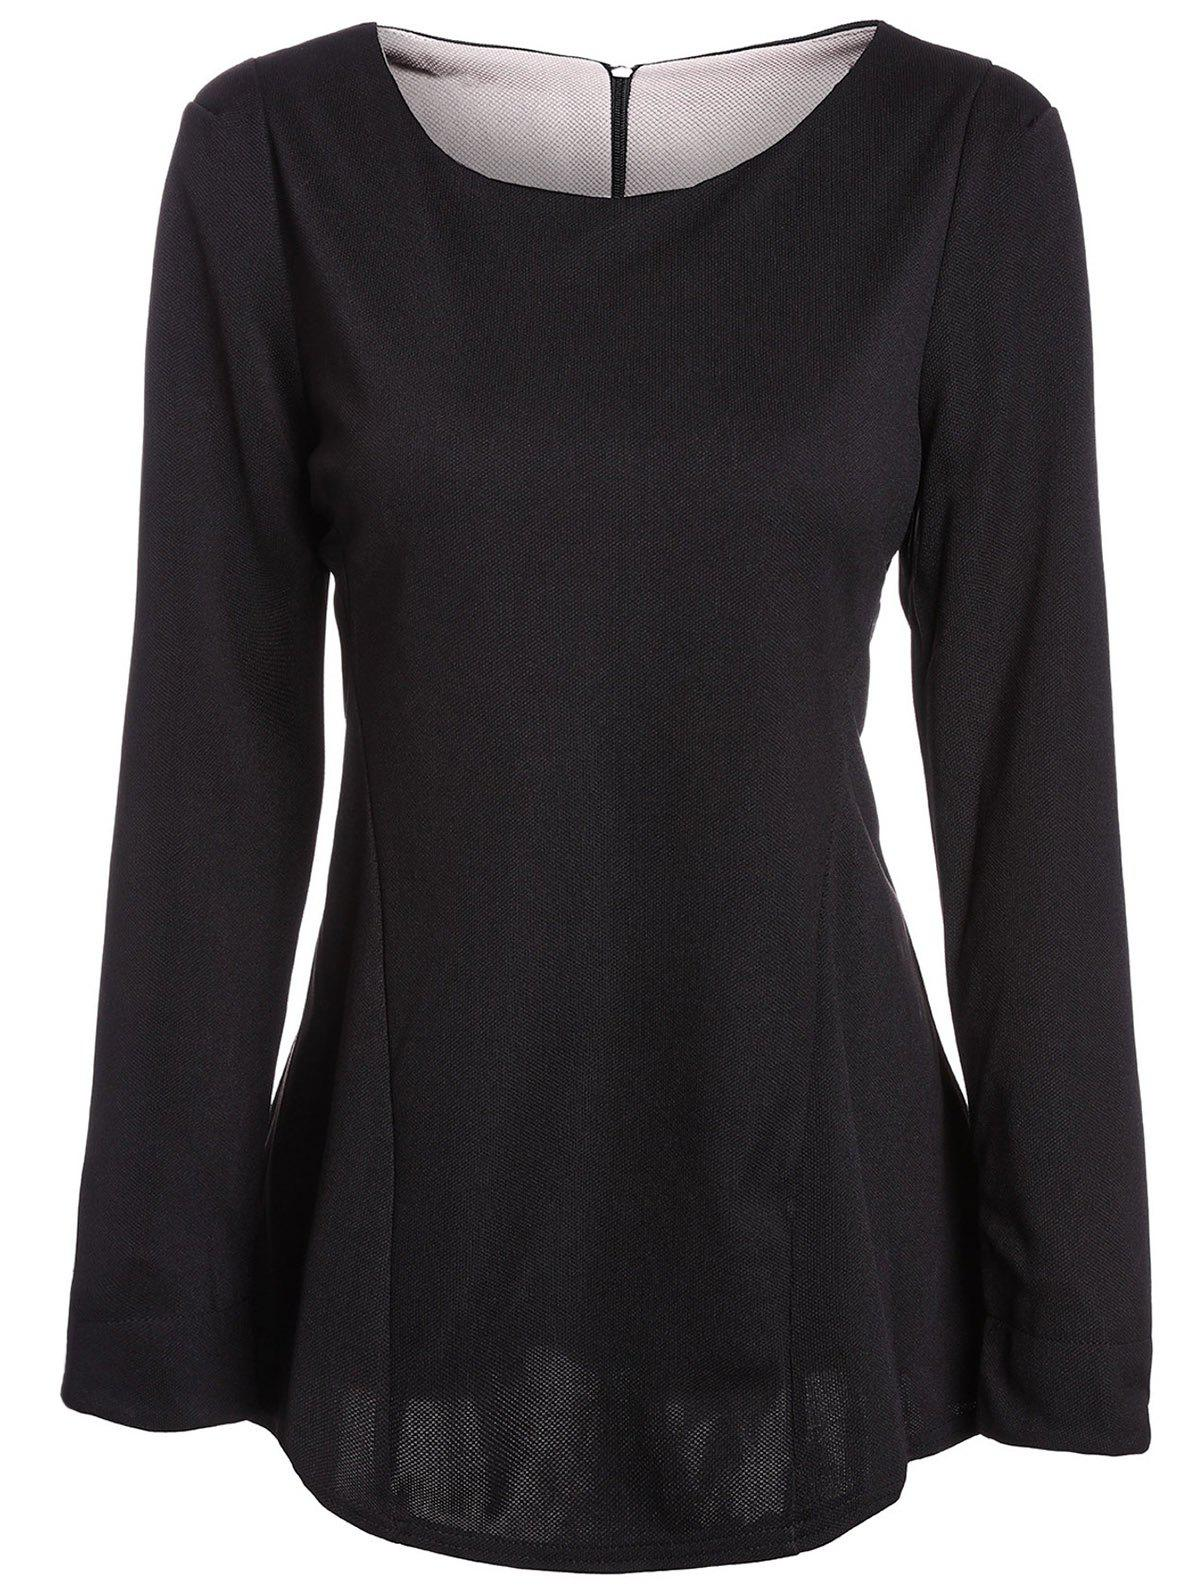 Stylish Scoop Neck Color Block Long Sleeve Ruffled Blouse For Women - BLACK XL